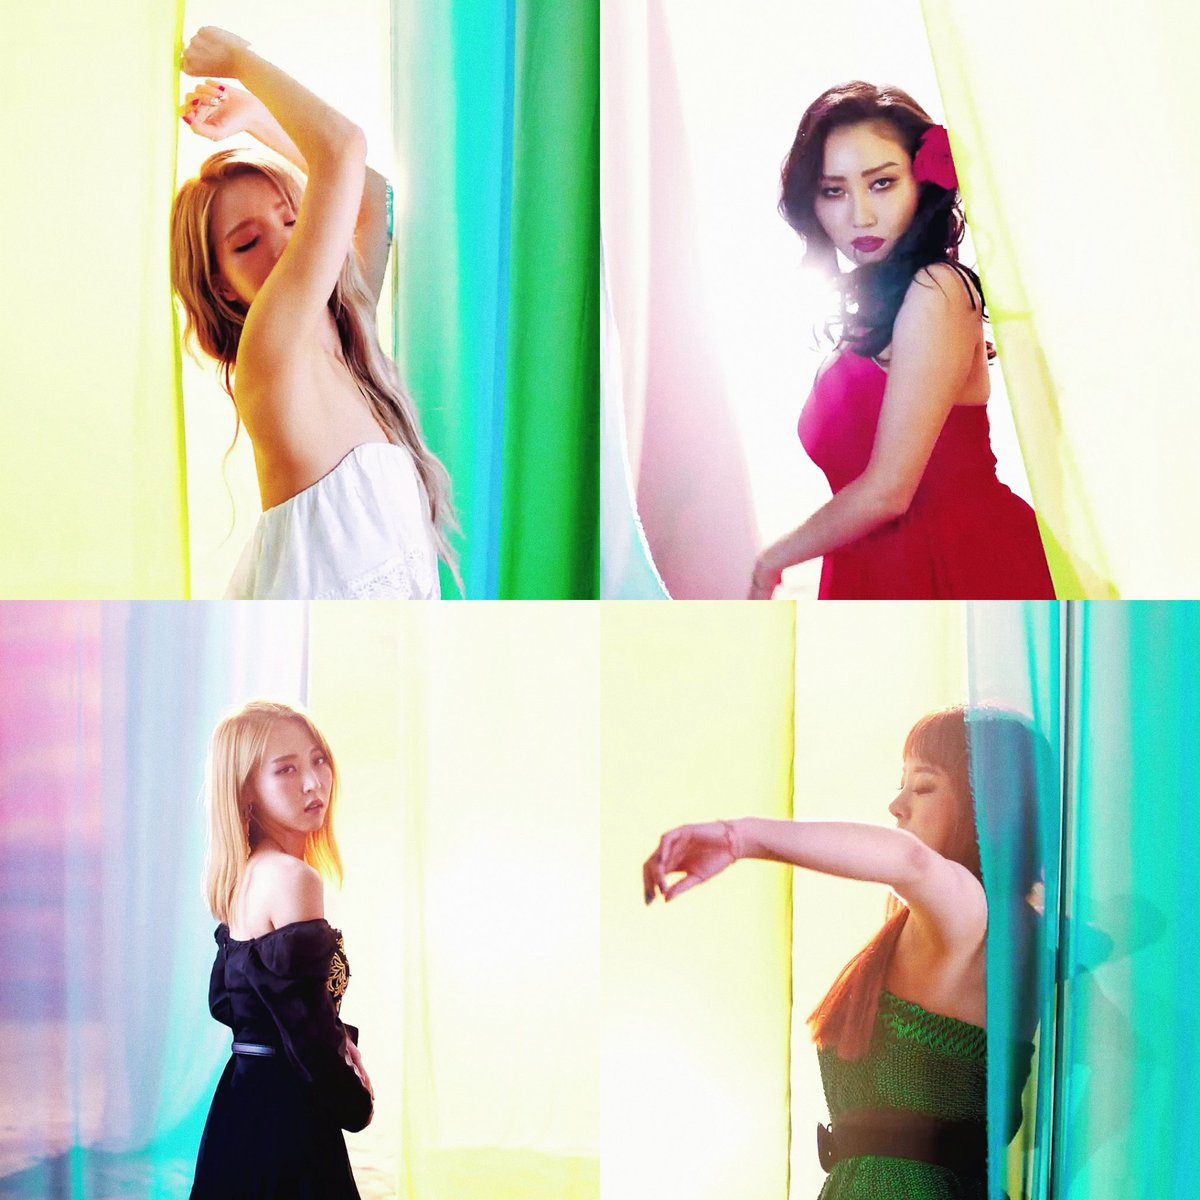 egotisticmamamoo tagged Tweets and Download Twitter MP4 Videos | Twitur